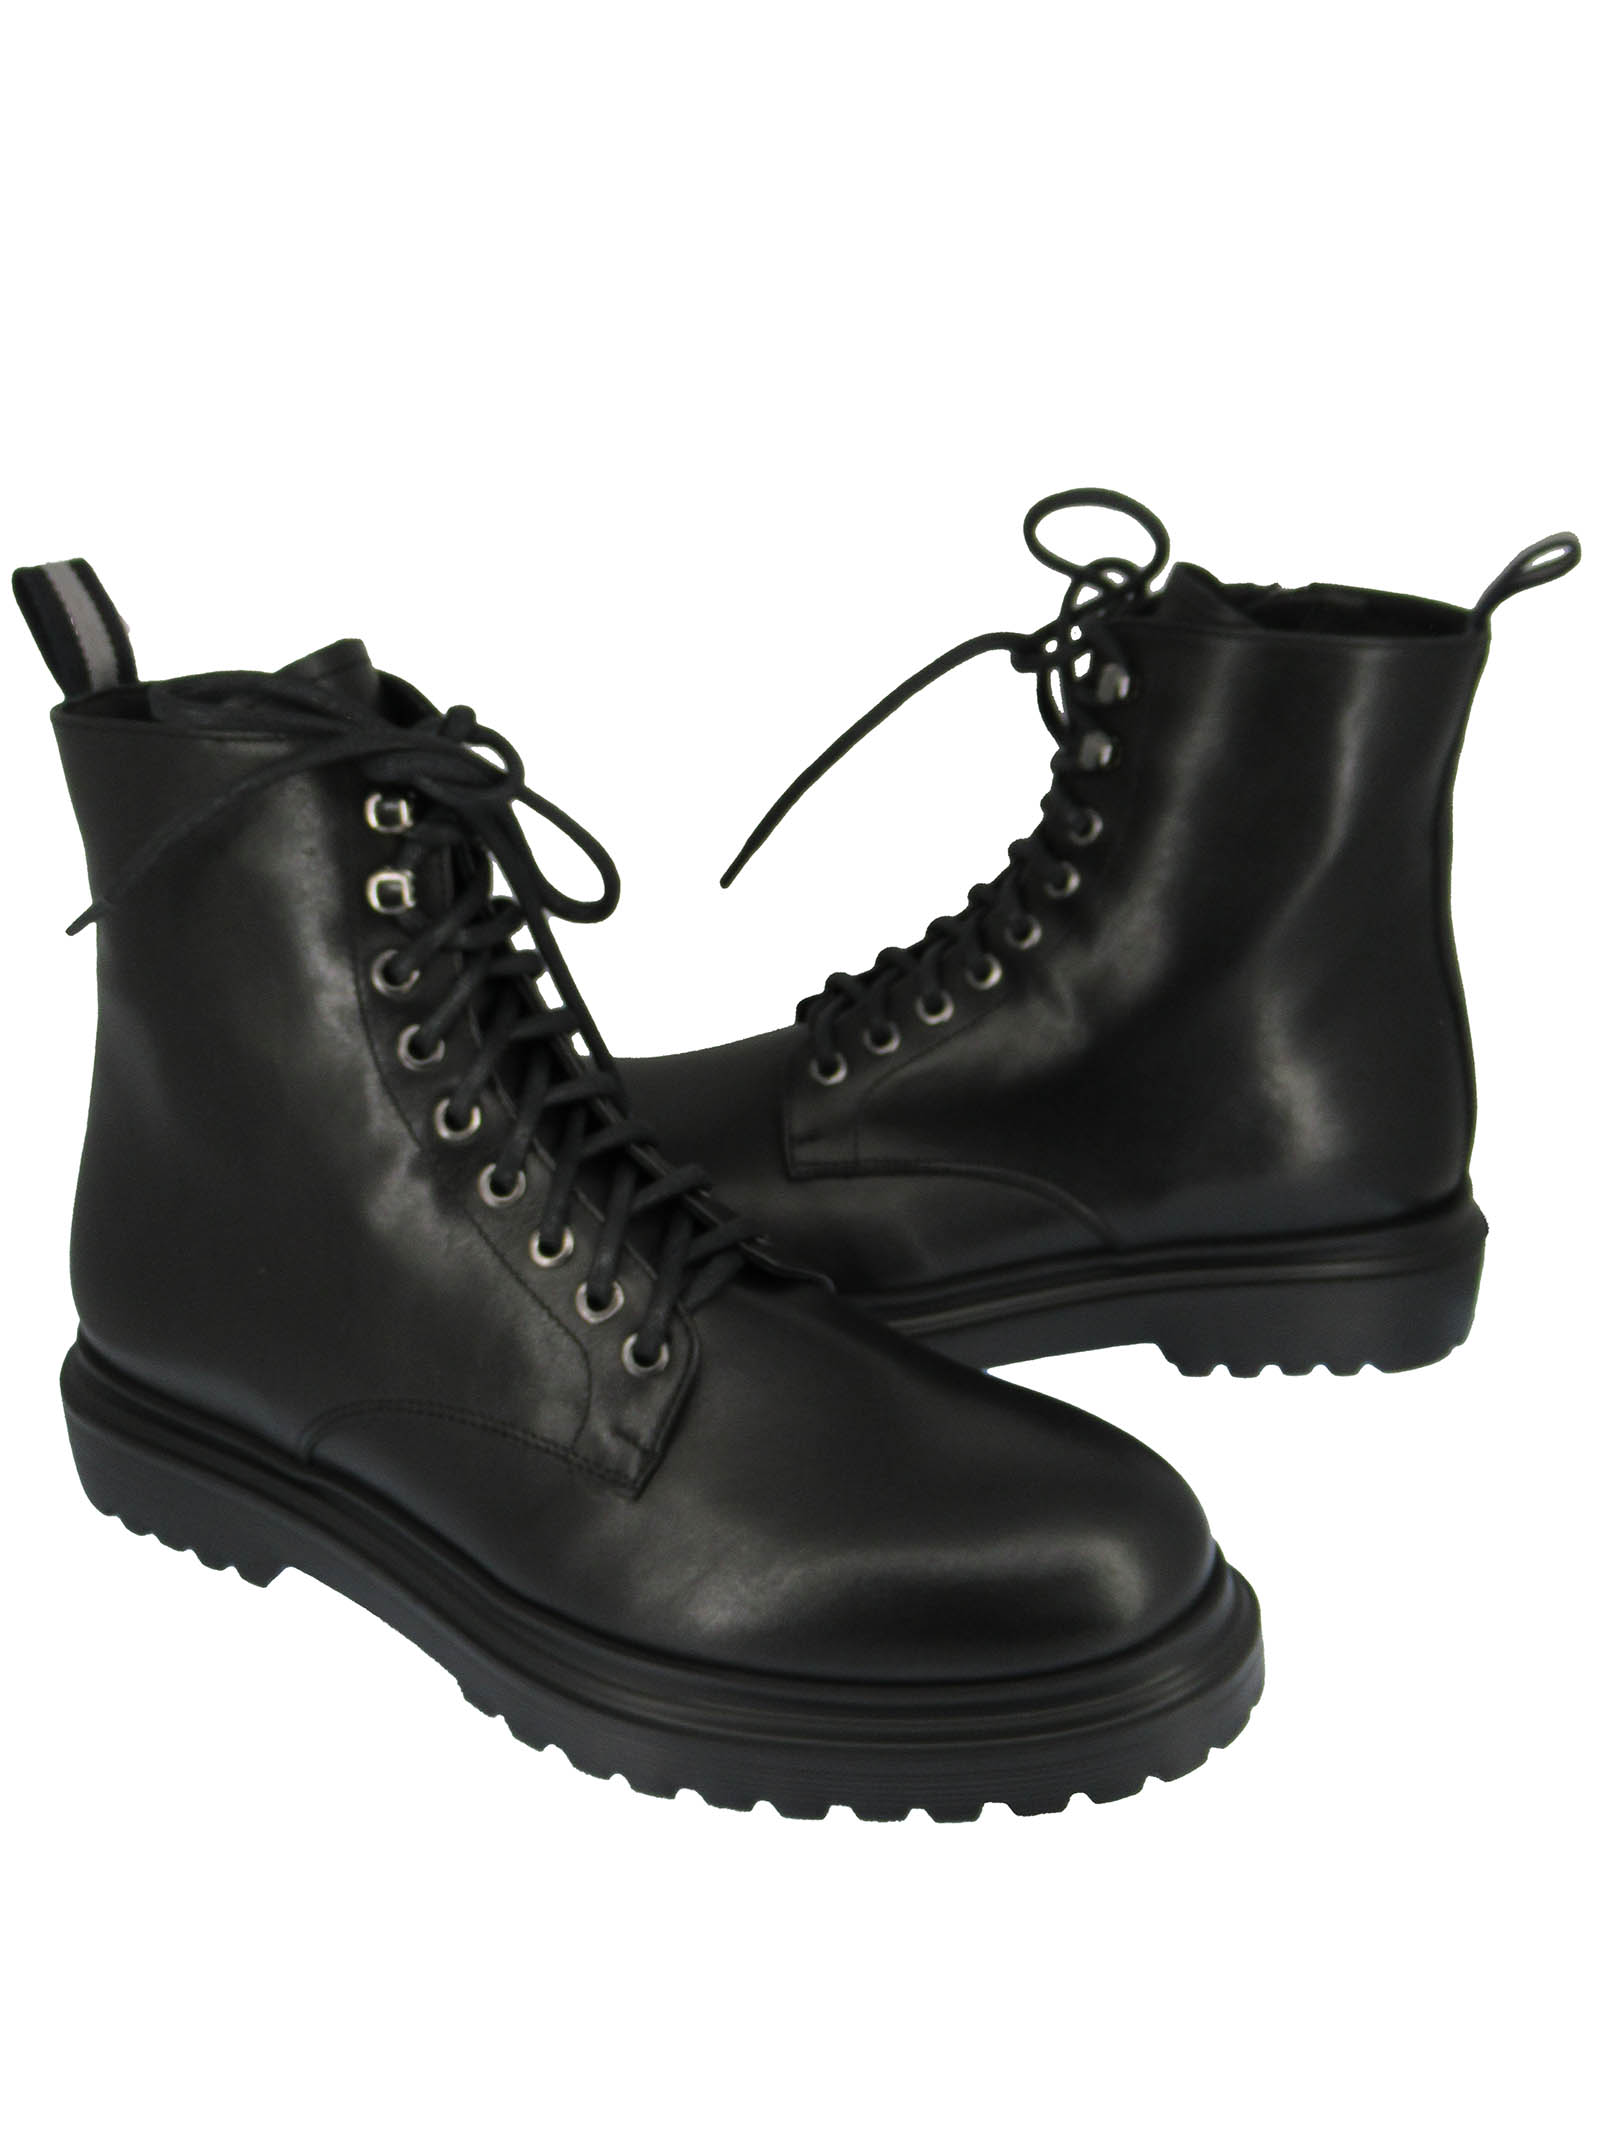 Men's Shoes Lace-up Amphibious Ankle Boots in Black Leather with Tank Sole Rogal's   Ankle Boots   MAR 16001